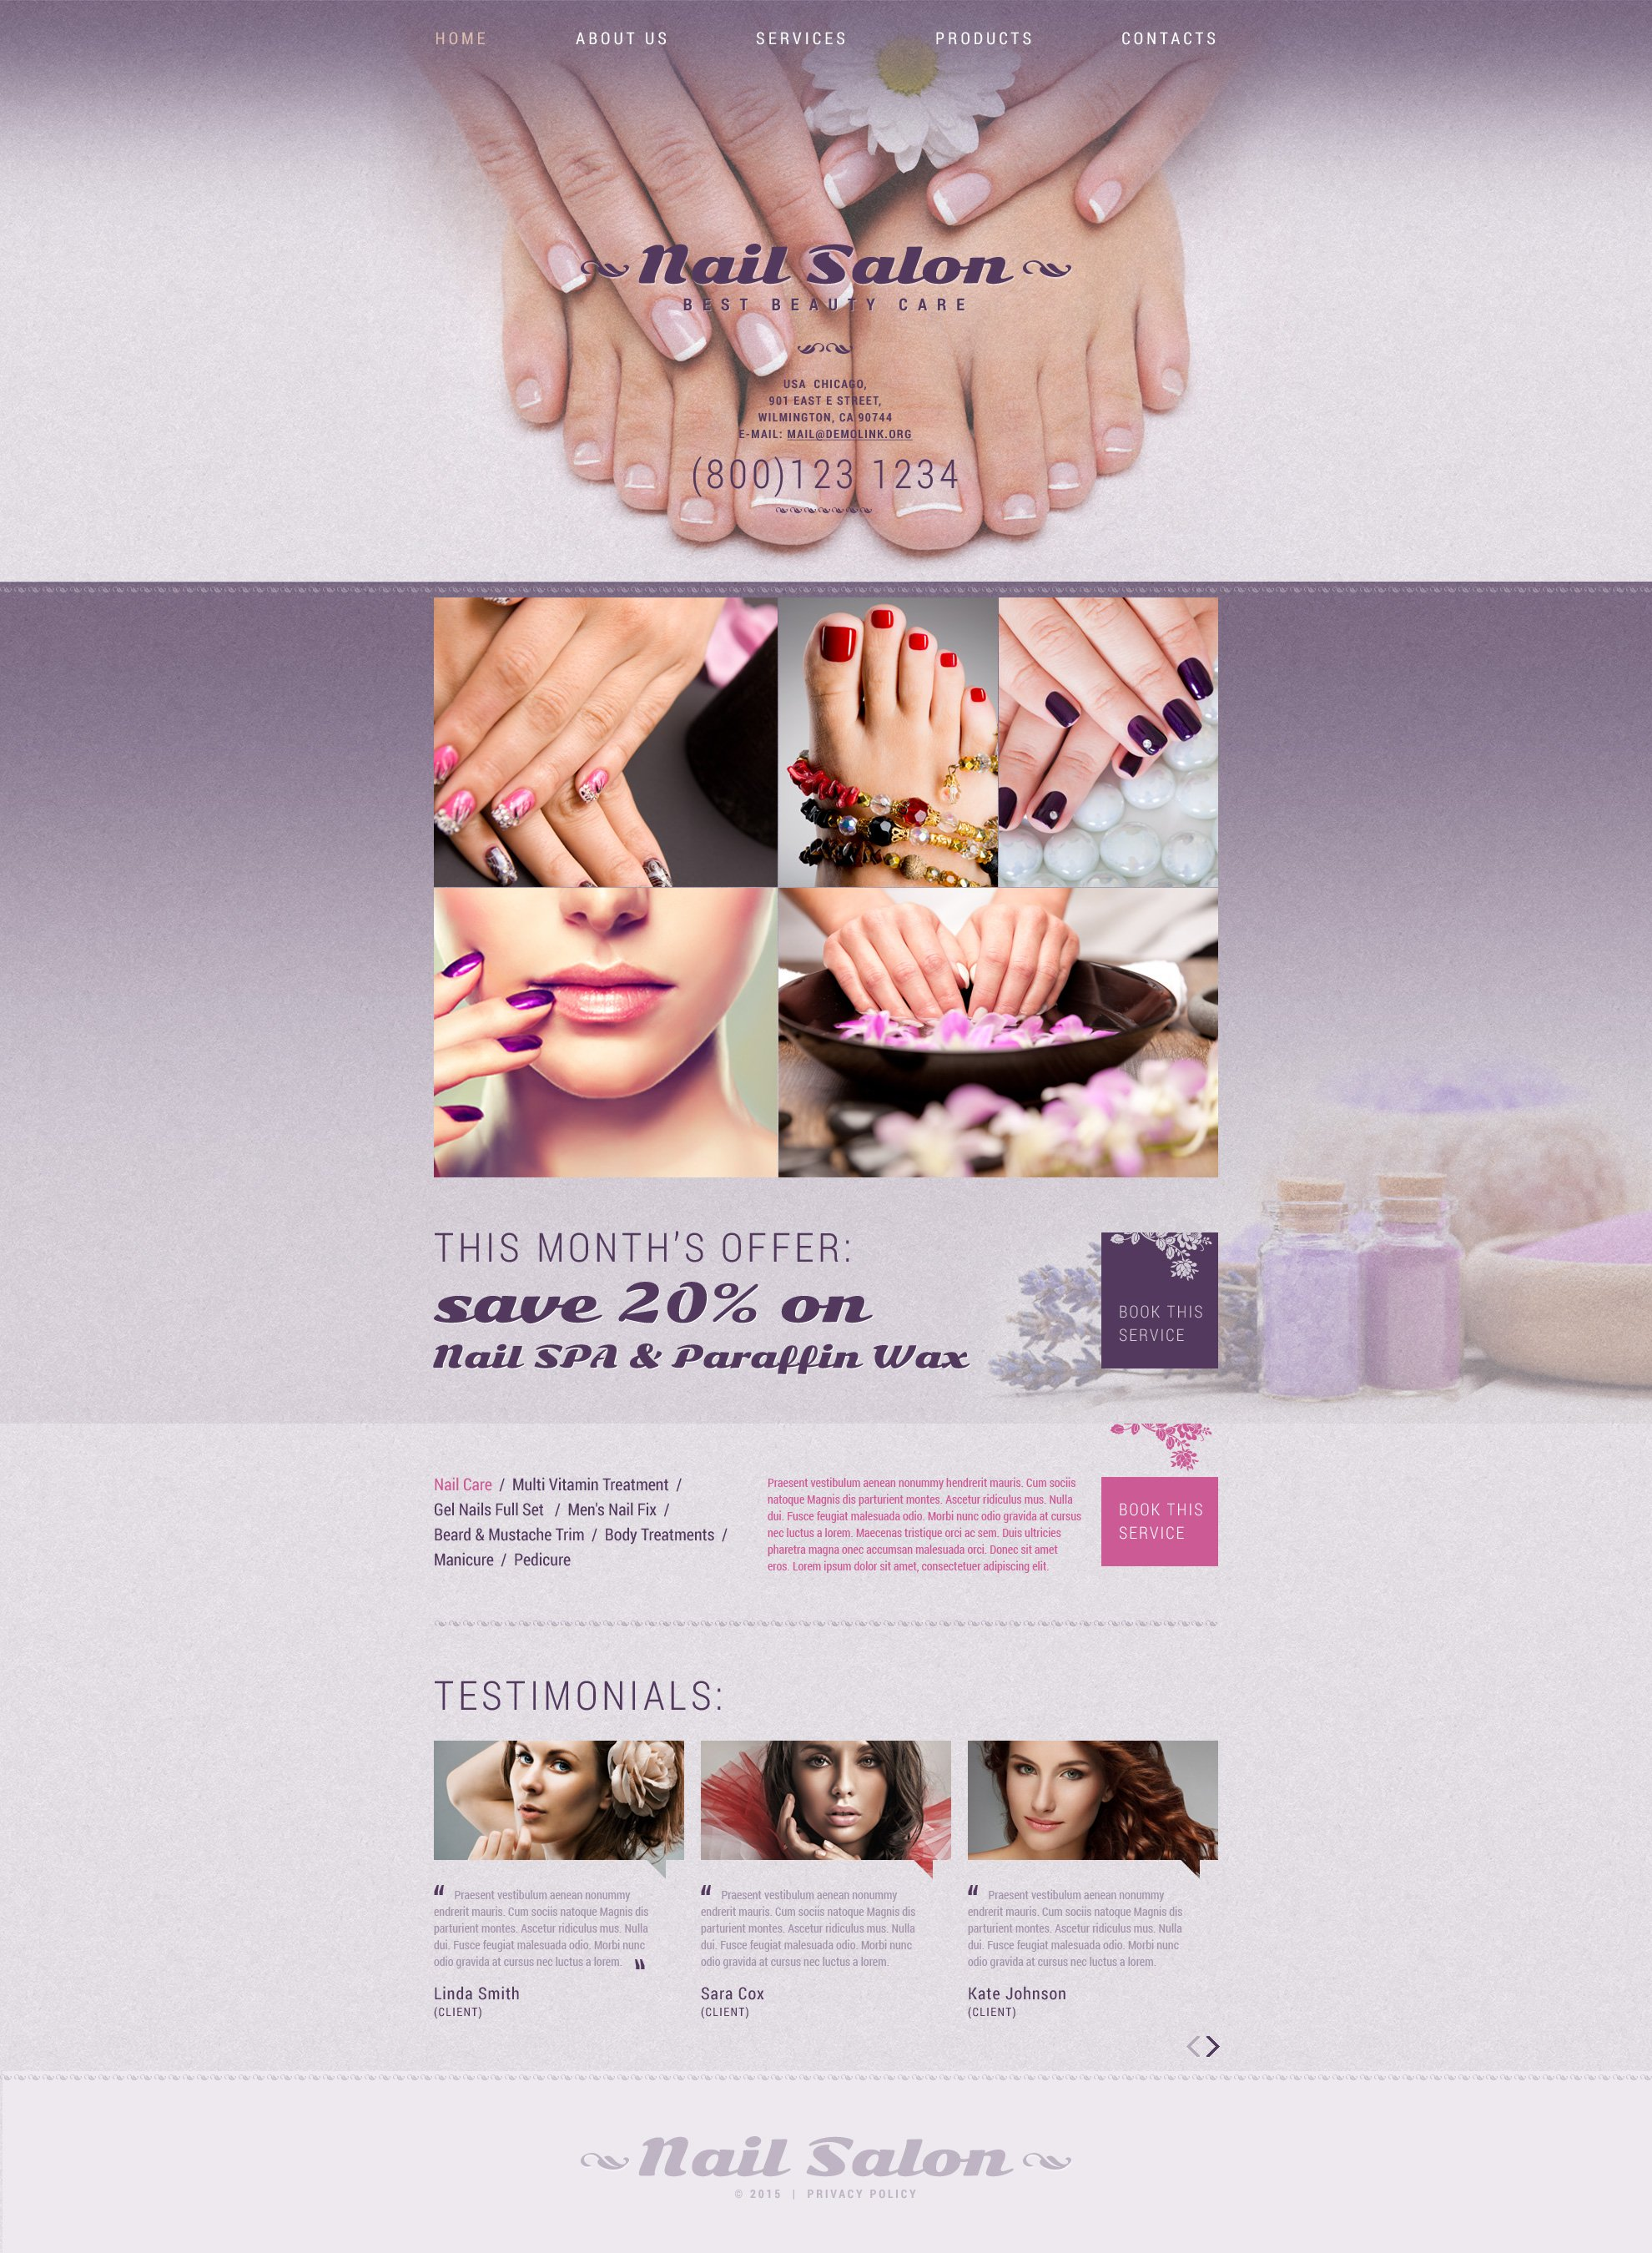 The Nail Salon Responsive Javascript Animated Design 53159, one of the best website templates of its kind (beauty, most popular), also known as nail salon website template, nails website template, beauty website template, fashion website template, manicure website template, enamel website template, nail website template, varnish website template, polish website template, gel website template, acryl website template, color design website template, hand website template, professional care website template, services website template, payment website template, prices website template, clients website template, products website template, fresh website template, gallery website template, colors website template, different website template, ways website template, styles website template, new website template, additional website template, discount company website template, quality website template, visitors and related with nail salon, nails, beauty, fashion, manicure, enamel, nail, varnish, polish, gel, acryl, color design, hand, professional care, services, payment, prices, clients, products, fresh, gallery, colors, different, ways, styles, new, additional, discount company, quality, visitors, etc.